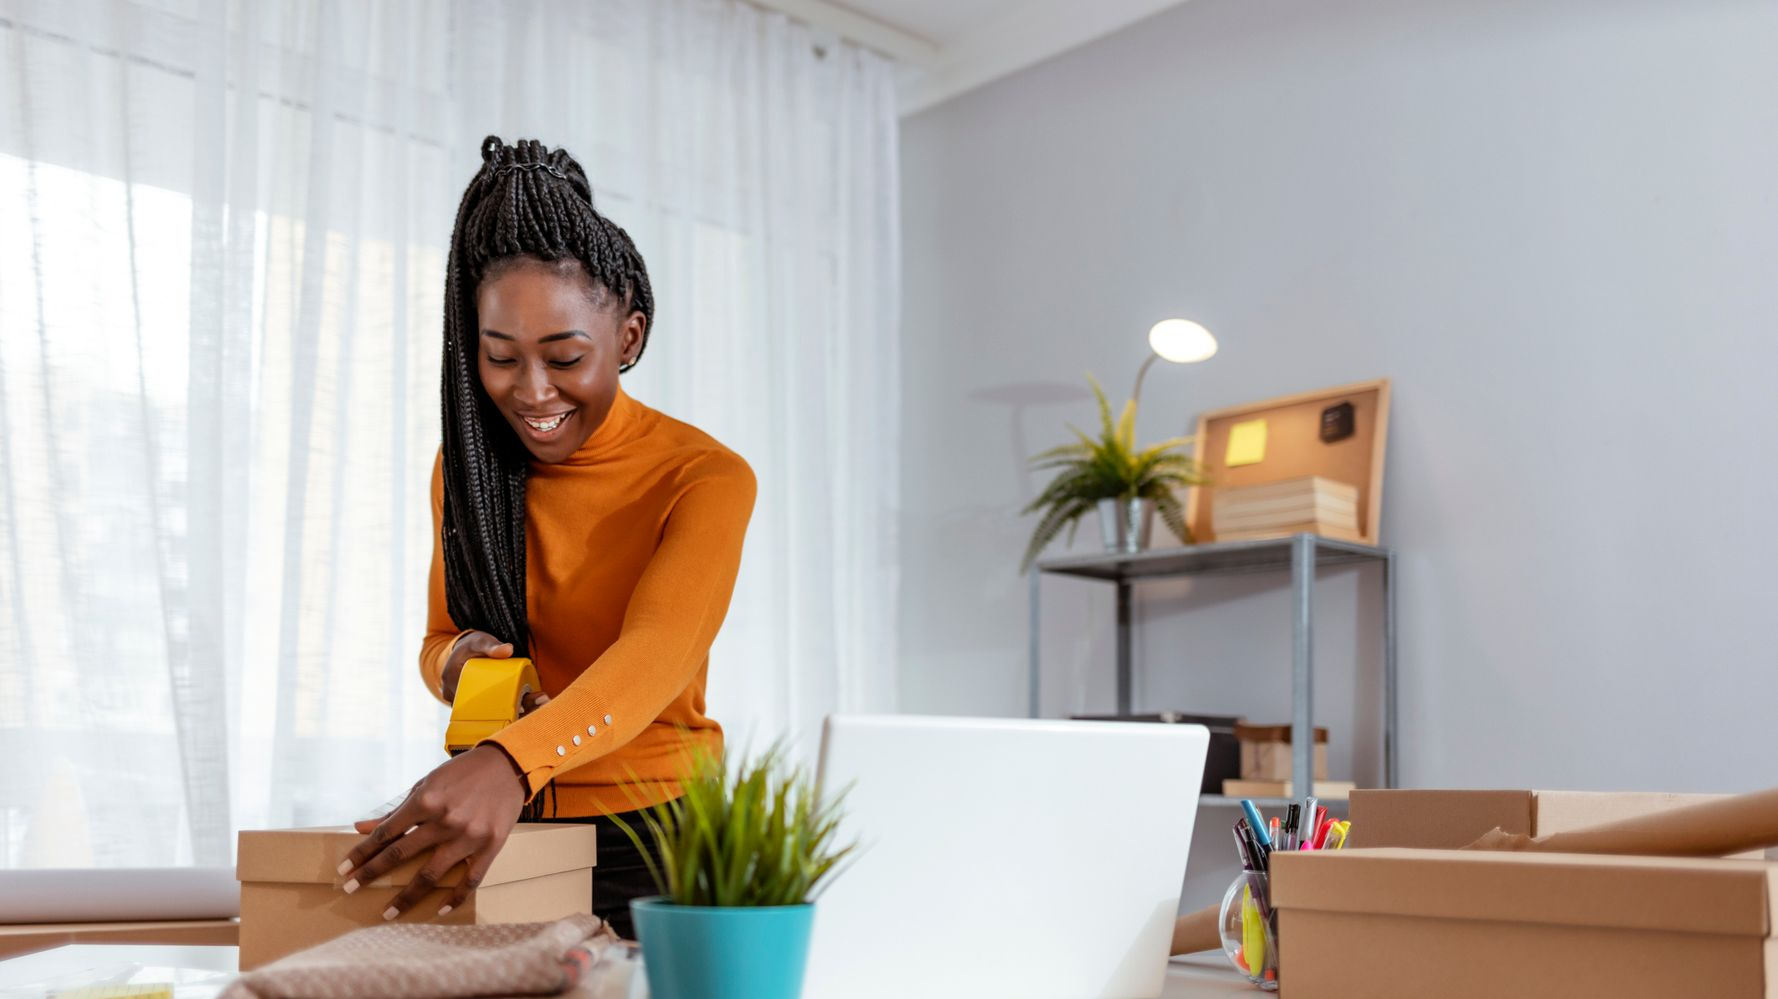 Want To Start Your Own Business From Home? Experts Share Their Top Tips